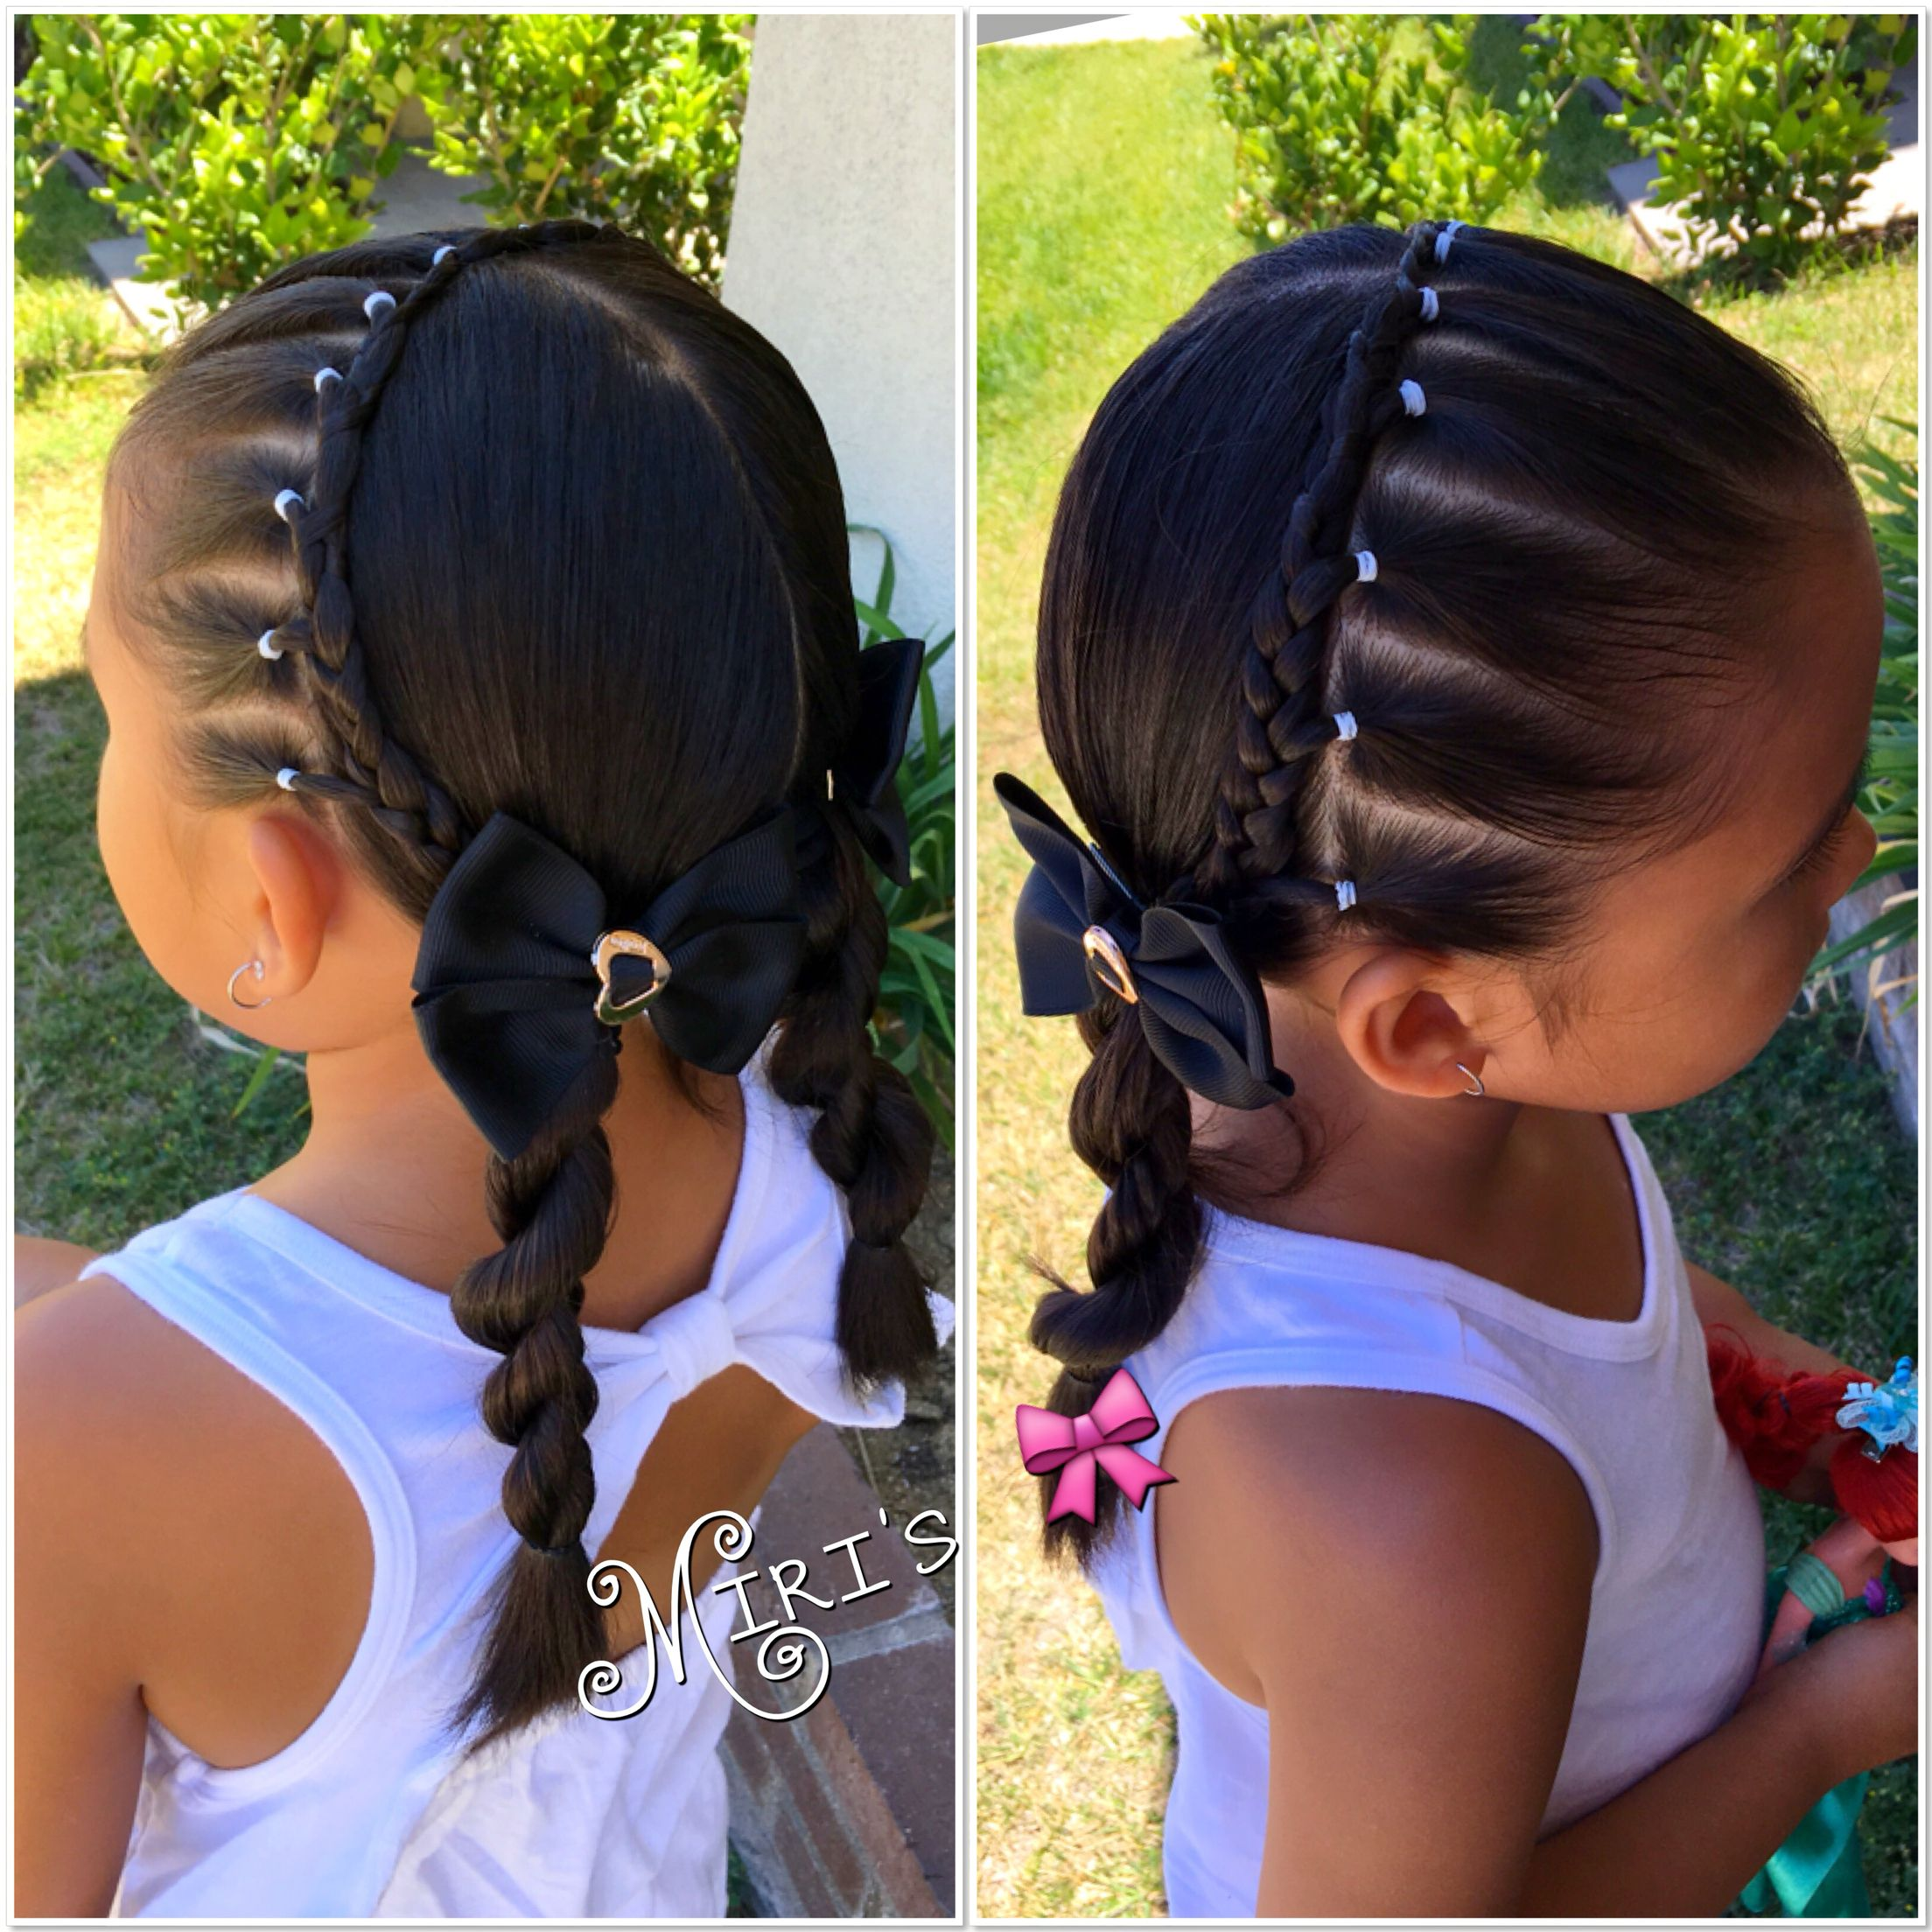 hair style for little girls | hairstyles for little girls